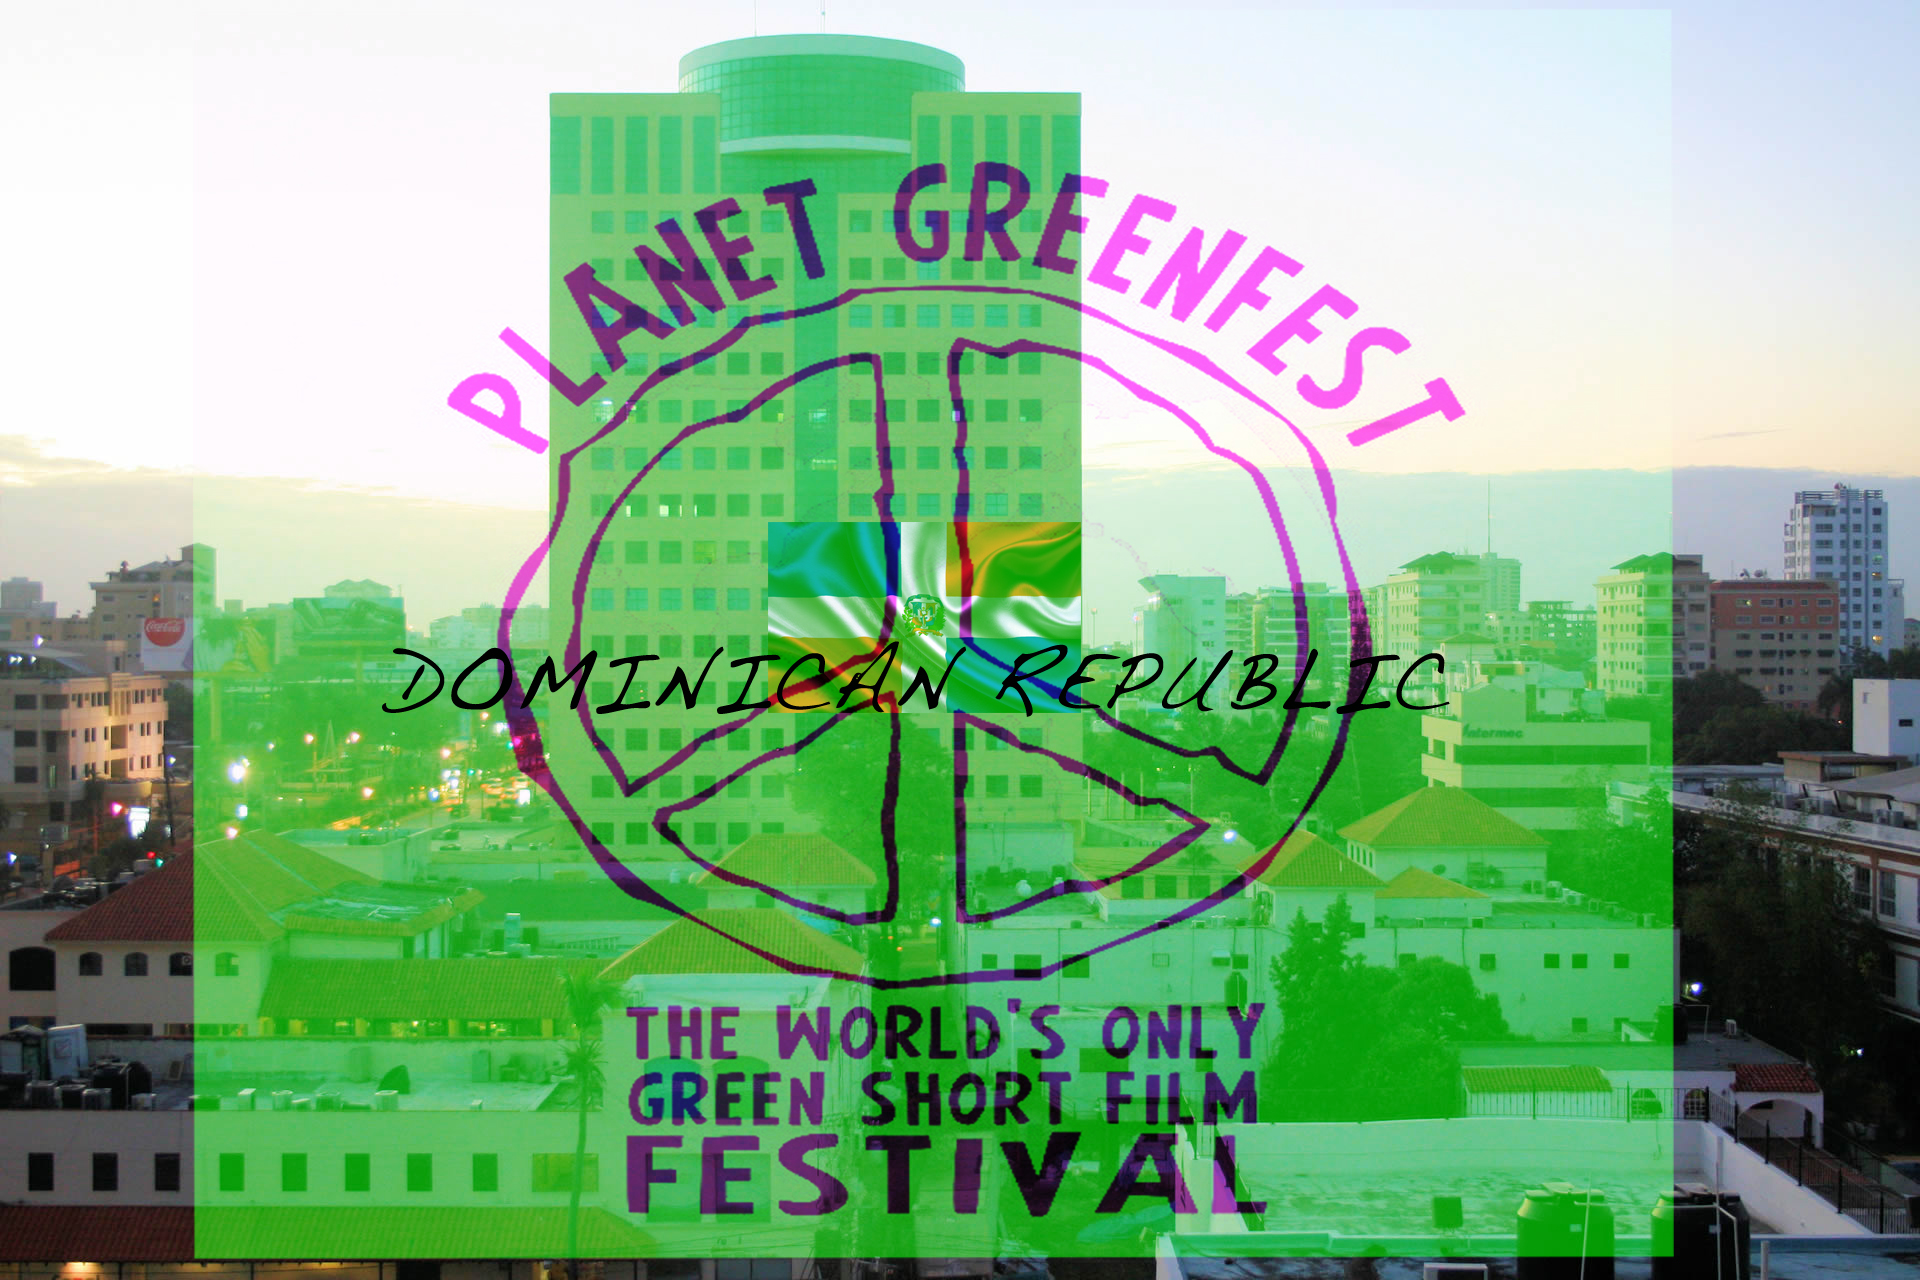 PLANET GREENFEST - DOMINICAN REPUBLIC